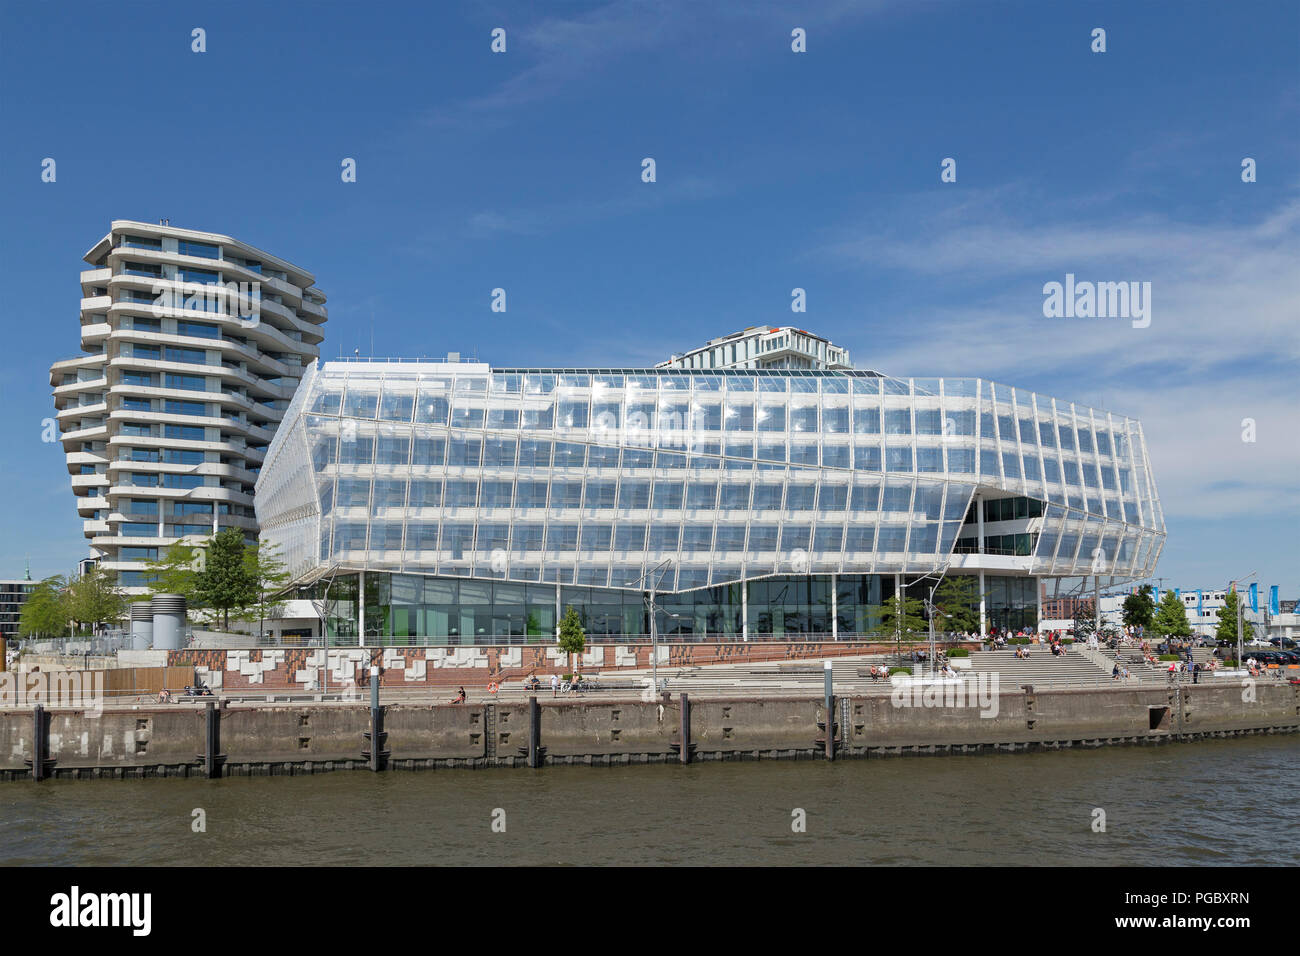 Marco Polo Tower and Unilever House, HafenCity (Harbour City), Hamburg, Germany - Stock Image